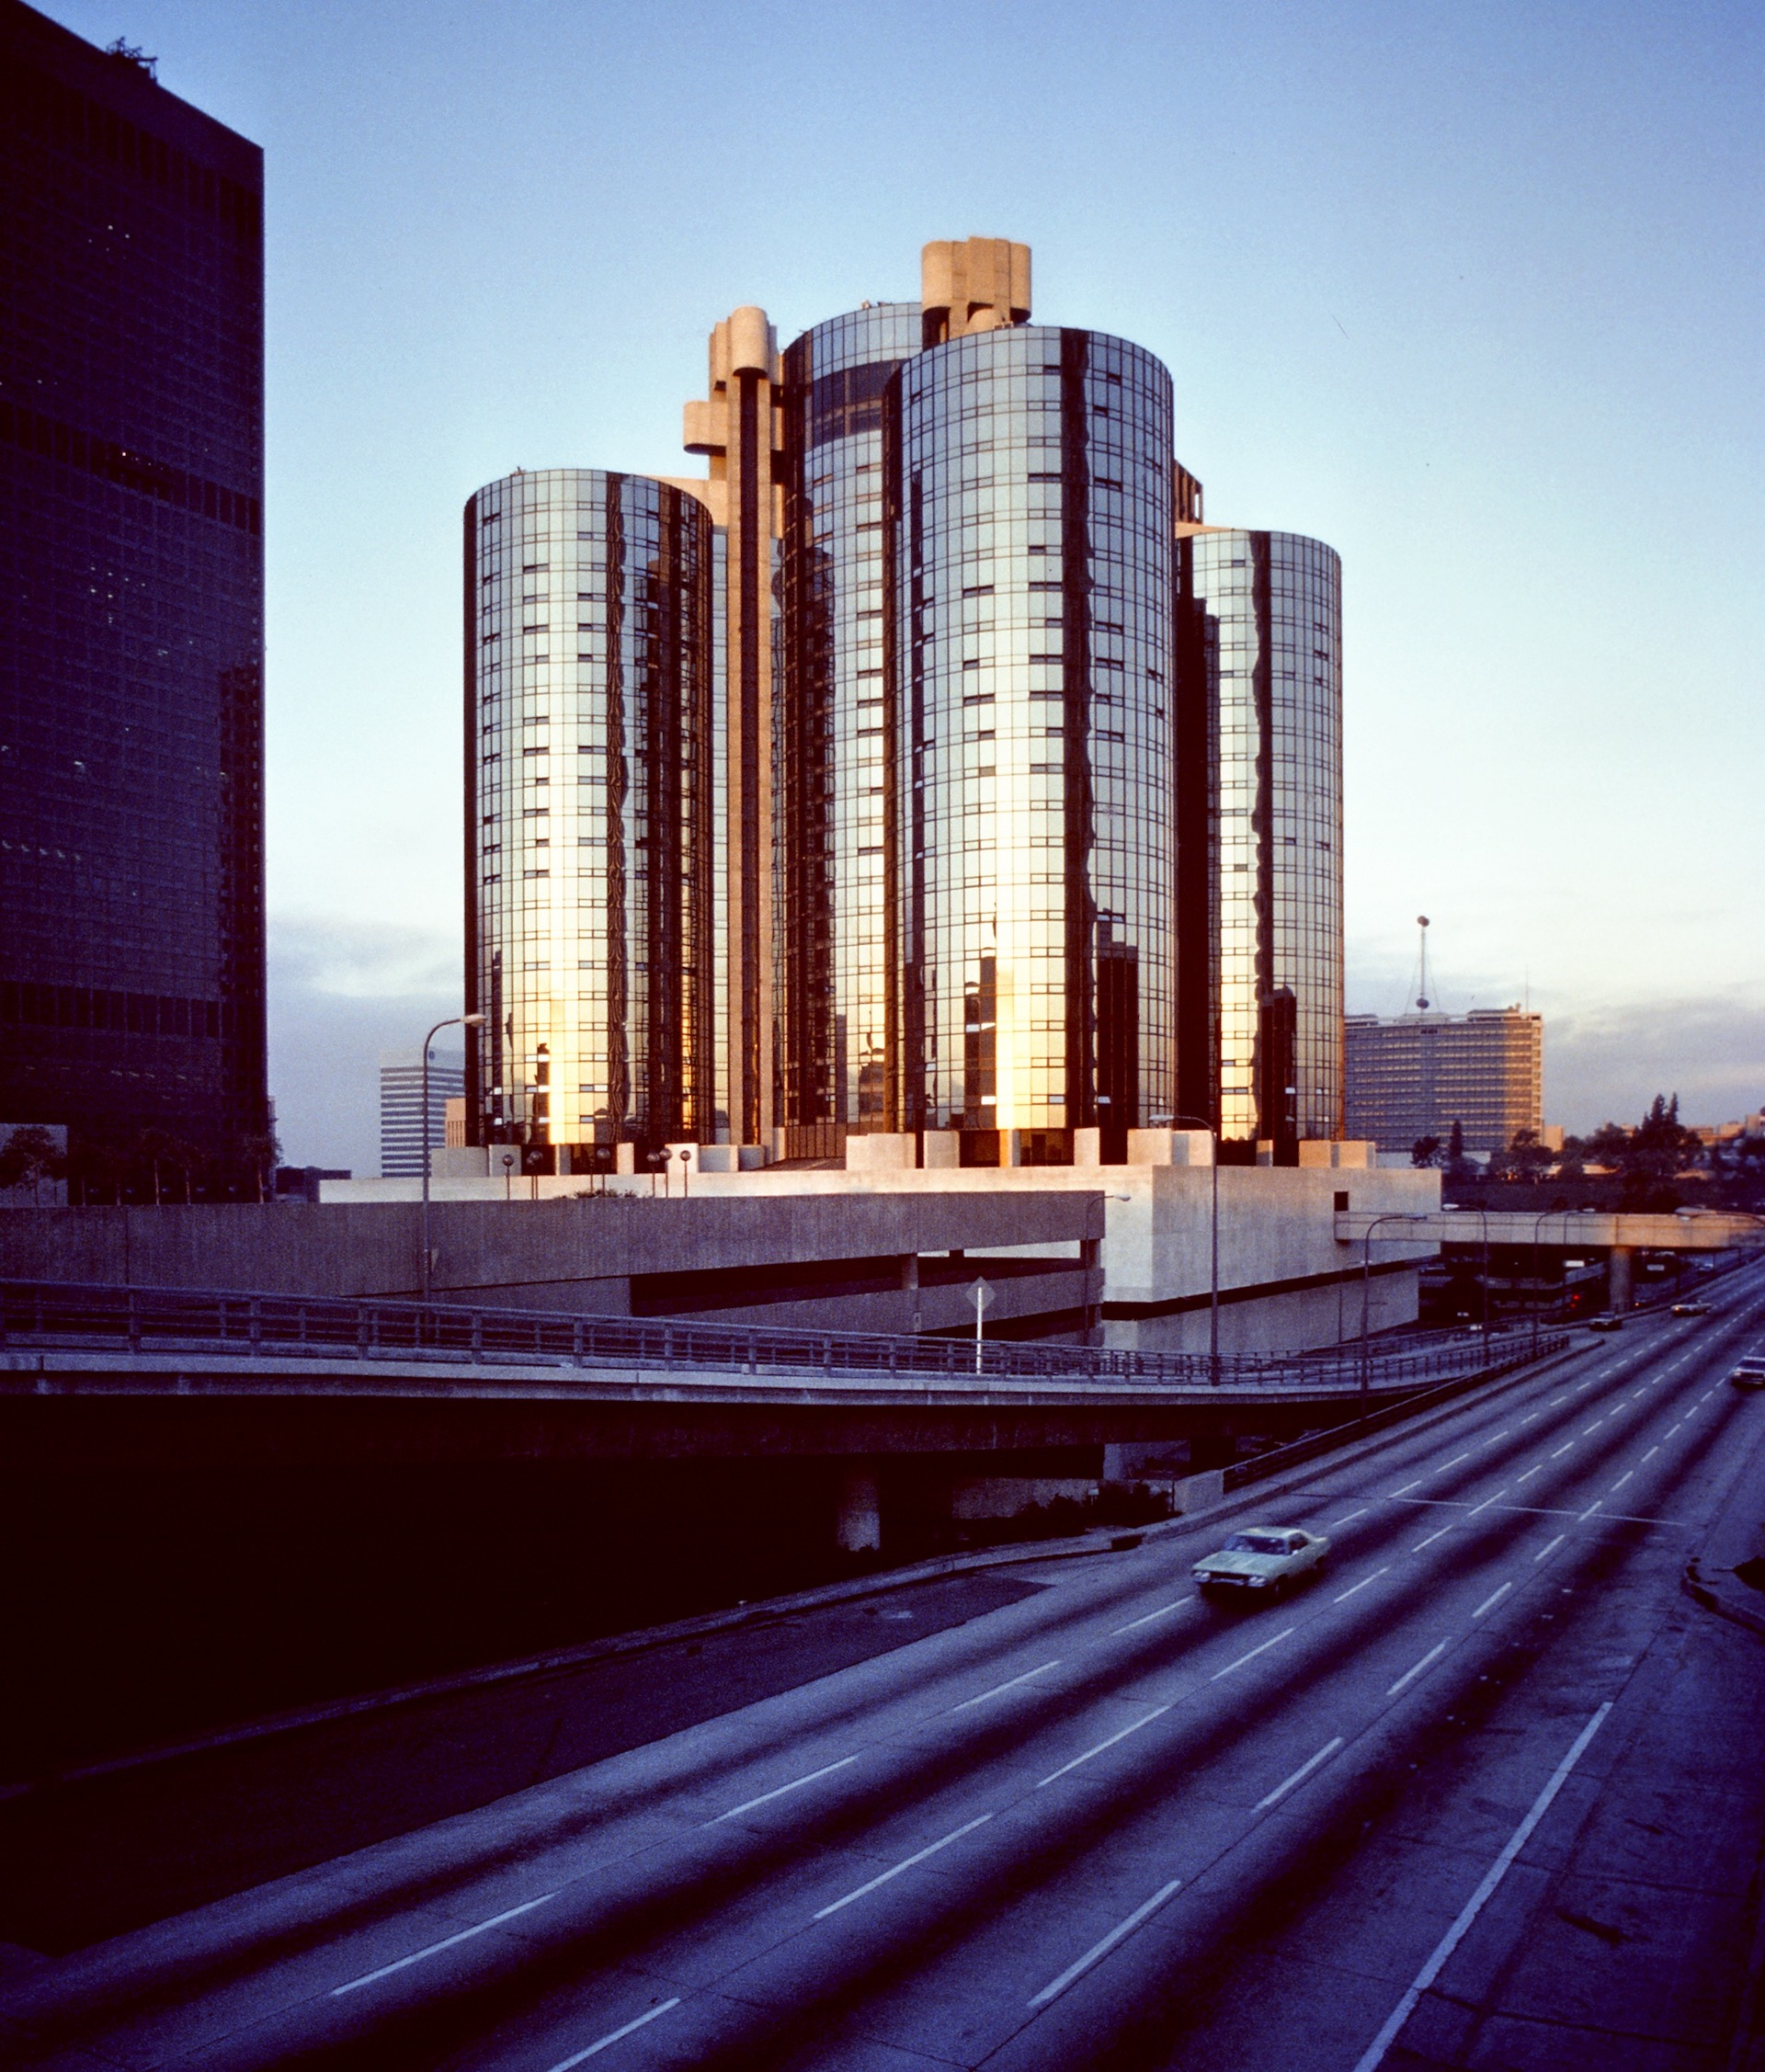 The Bonaventure Hotel, photographed by Wayne Thom in 1978.